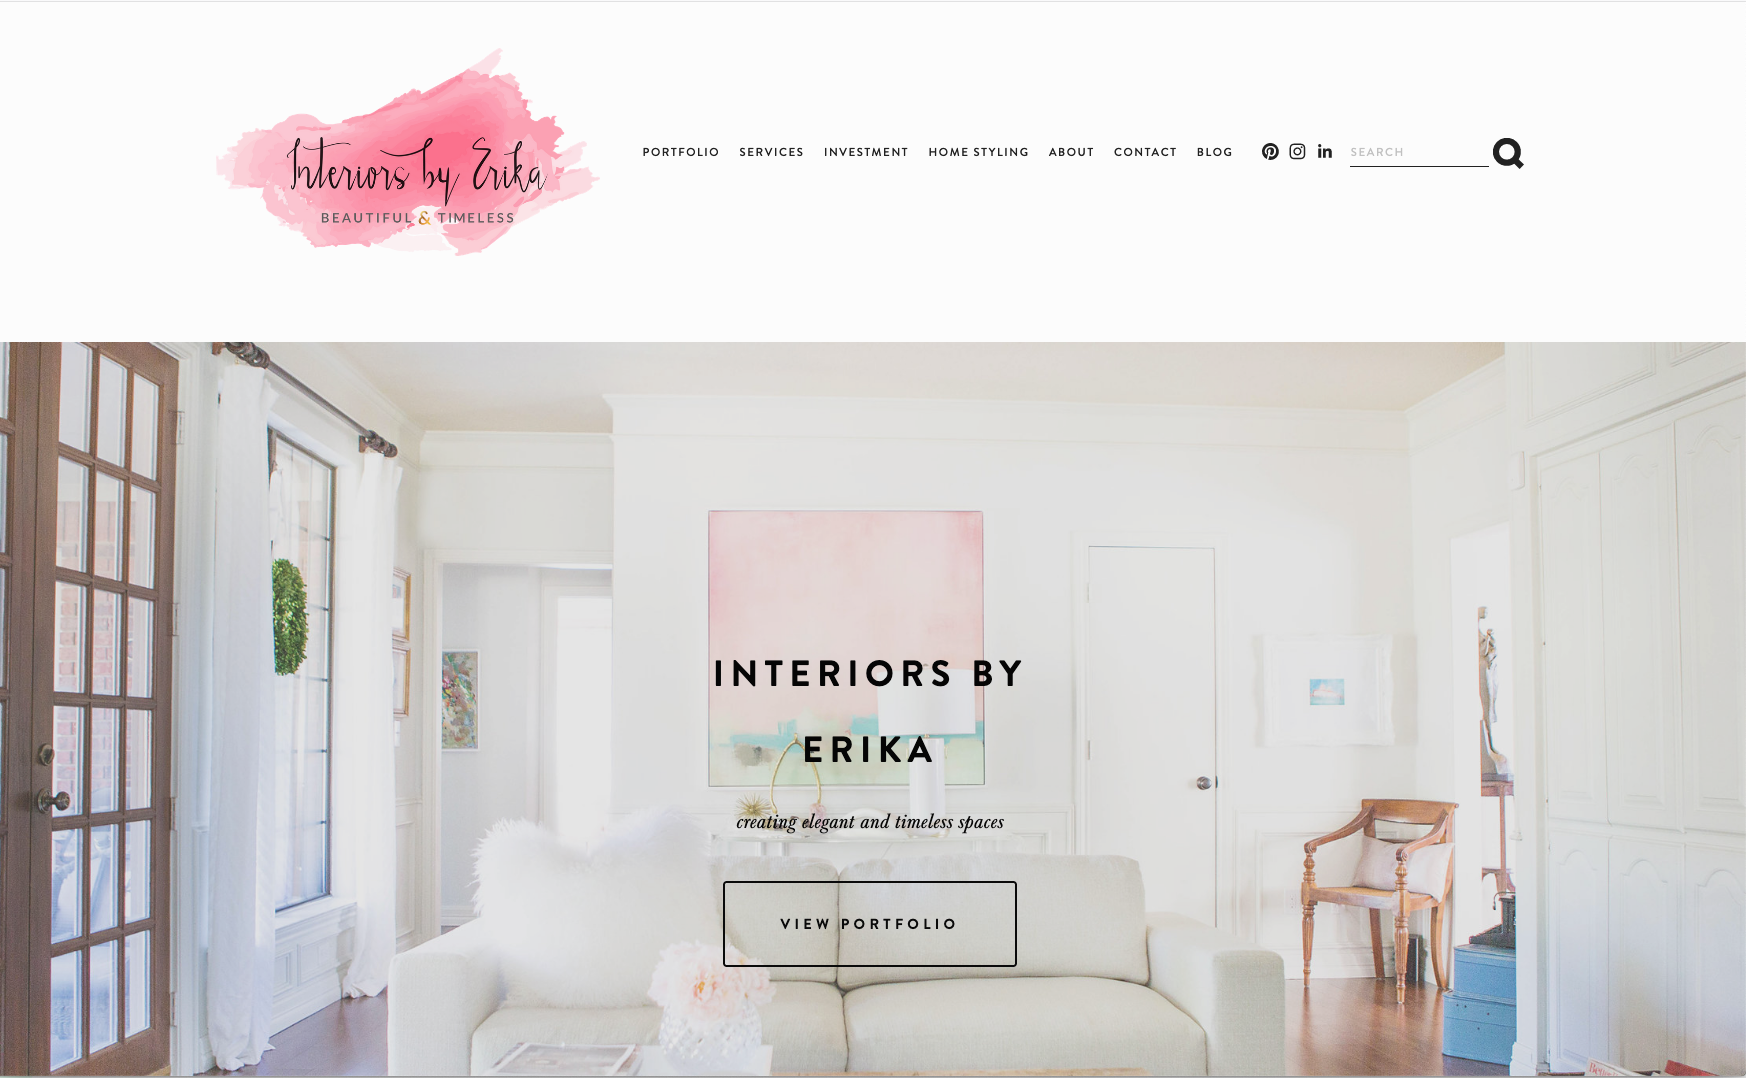 Interiors by Erika      - a Squarespace website for an interior decorator, also featuring Jessica's photography of client's interiors